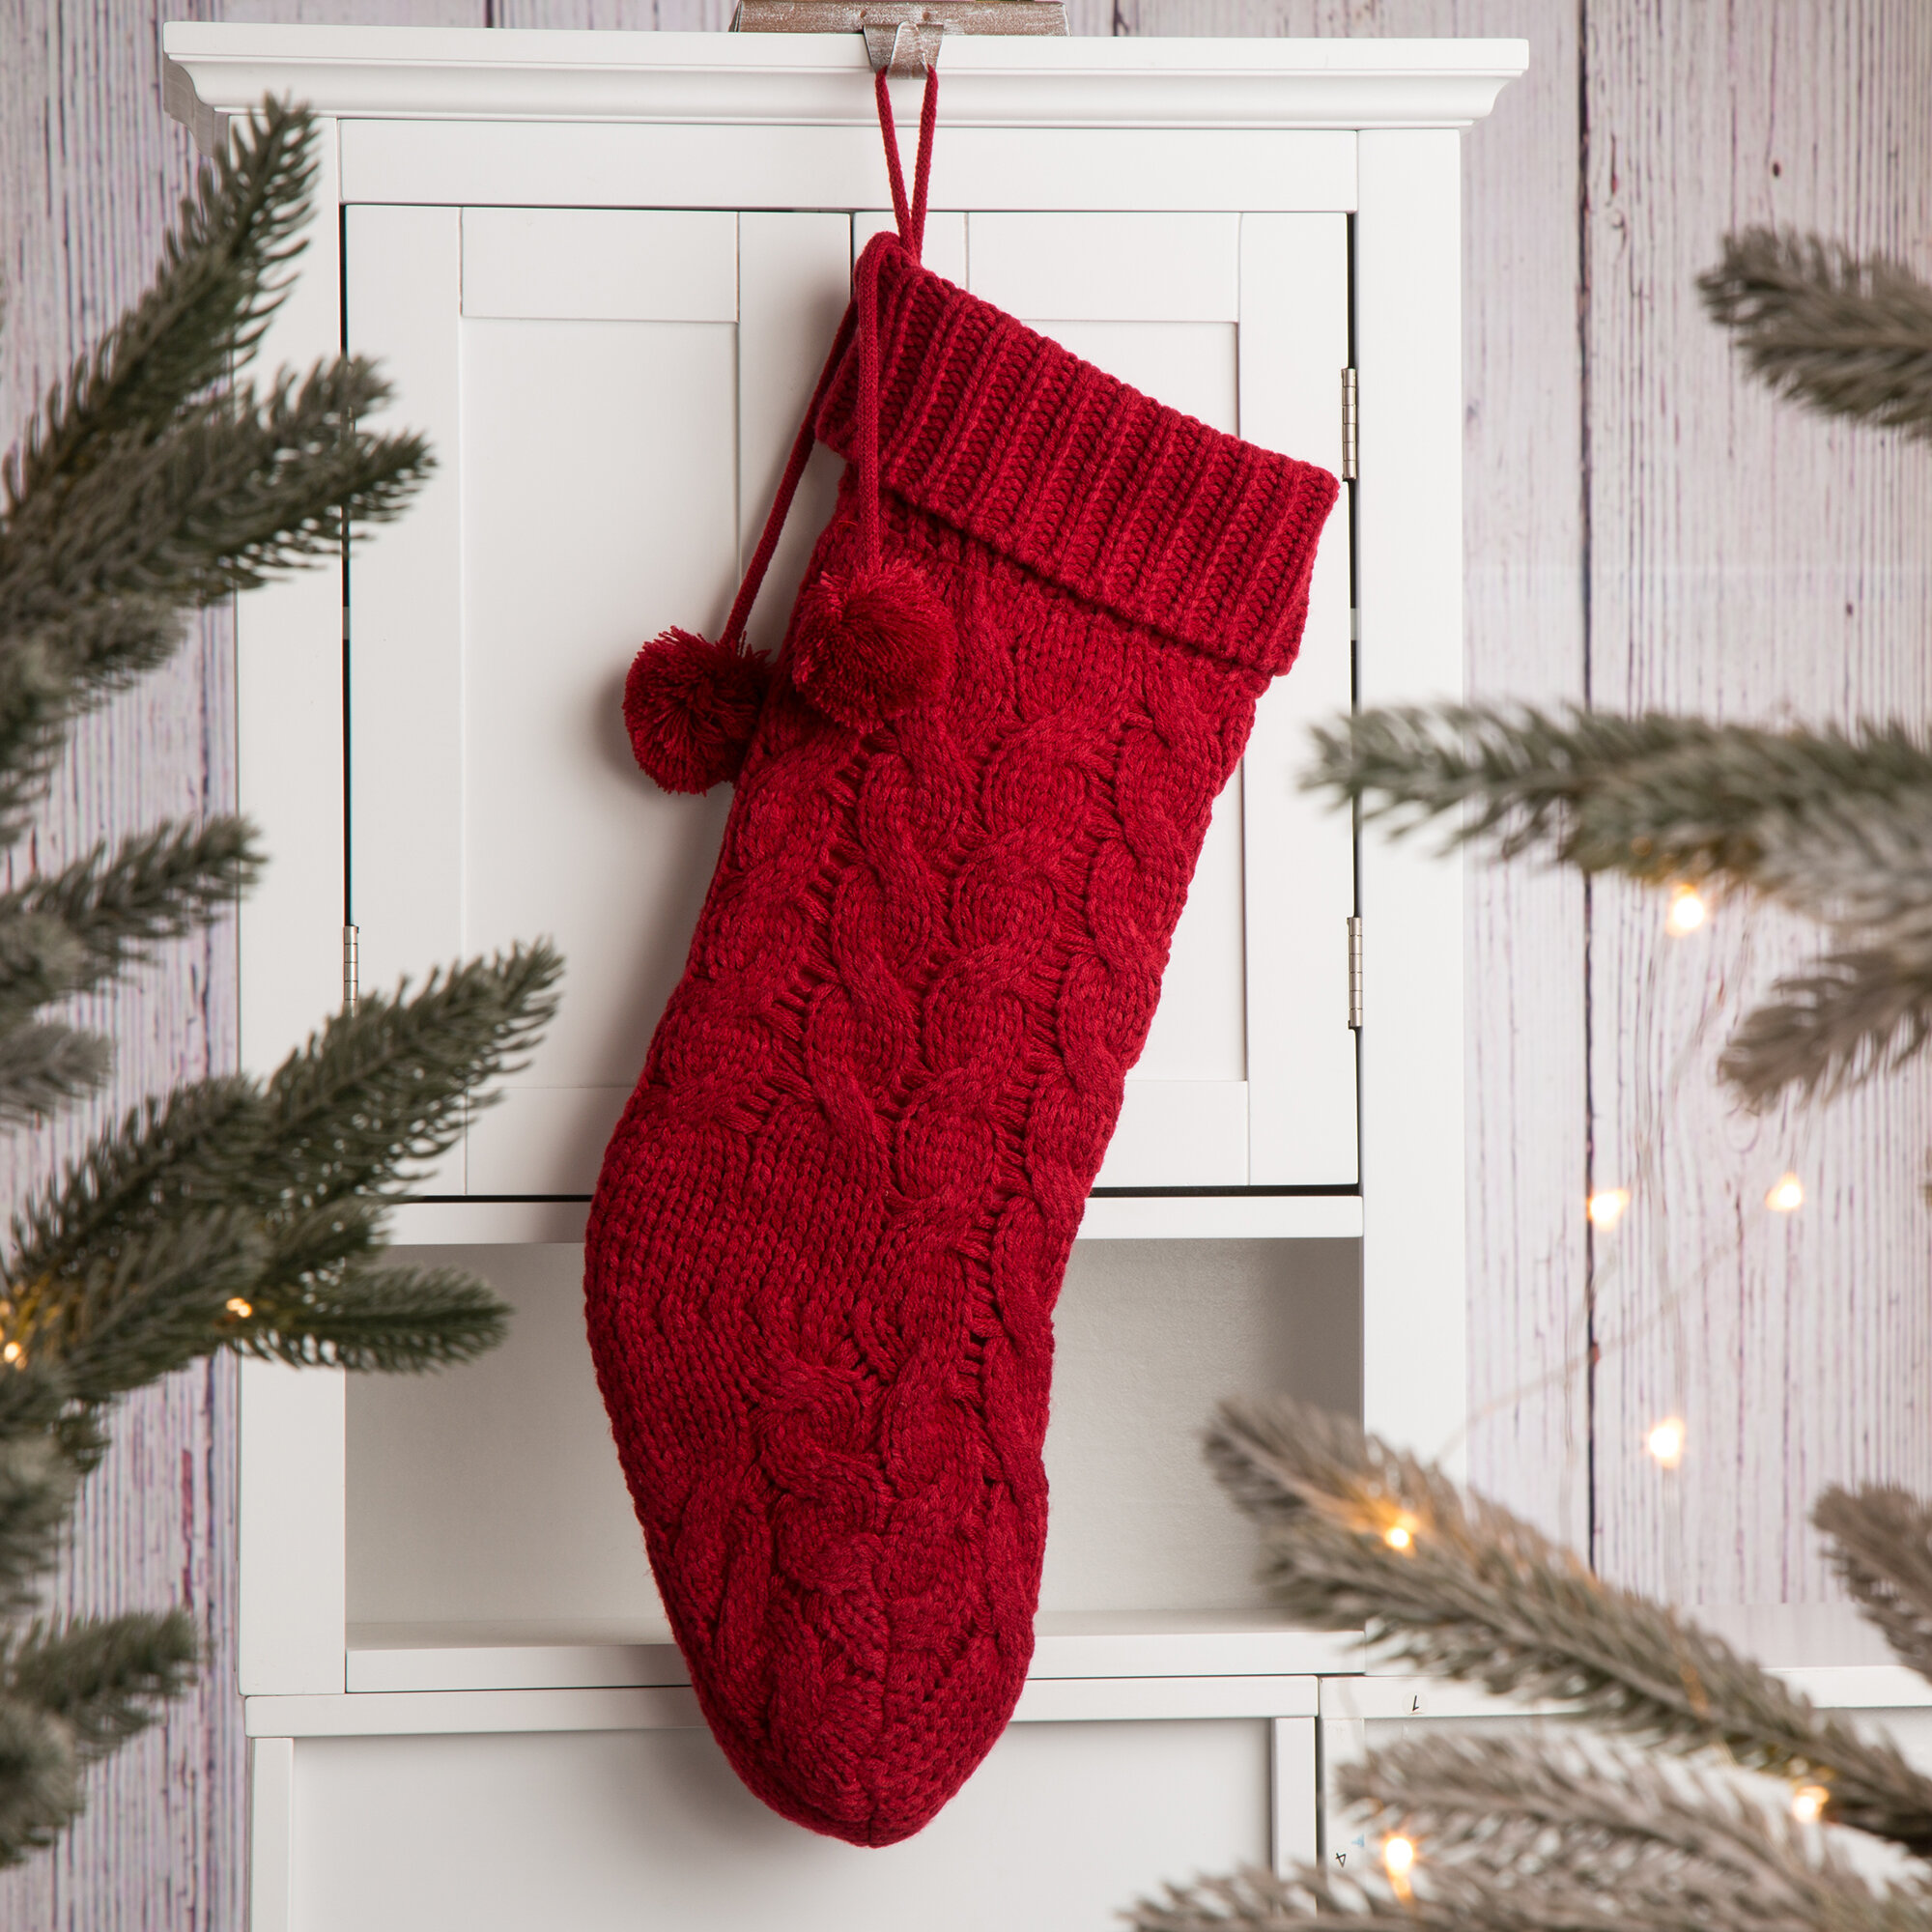 Knitted Christmas Stockings.Knitted Christmas Stocking